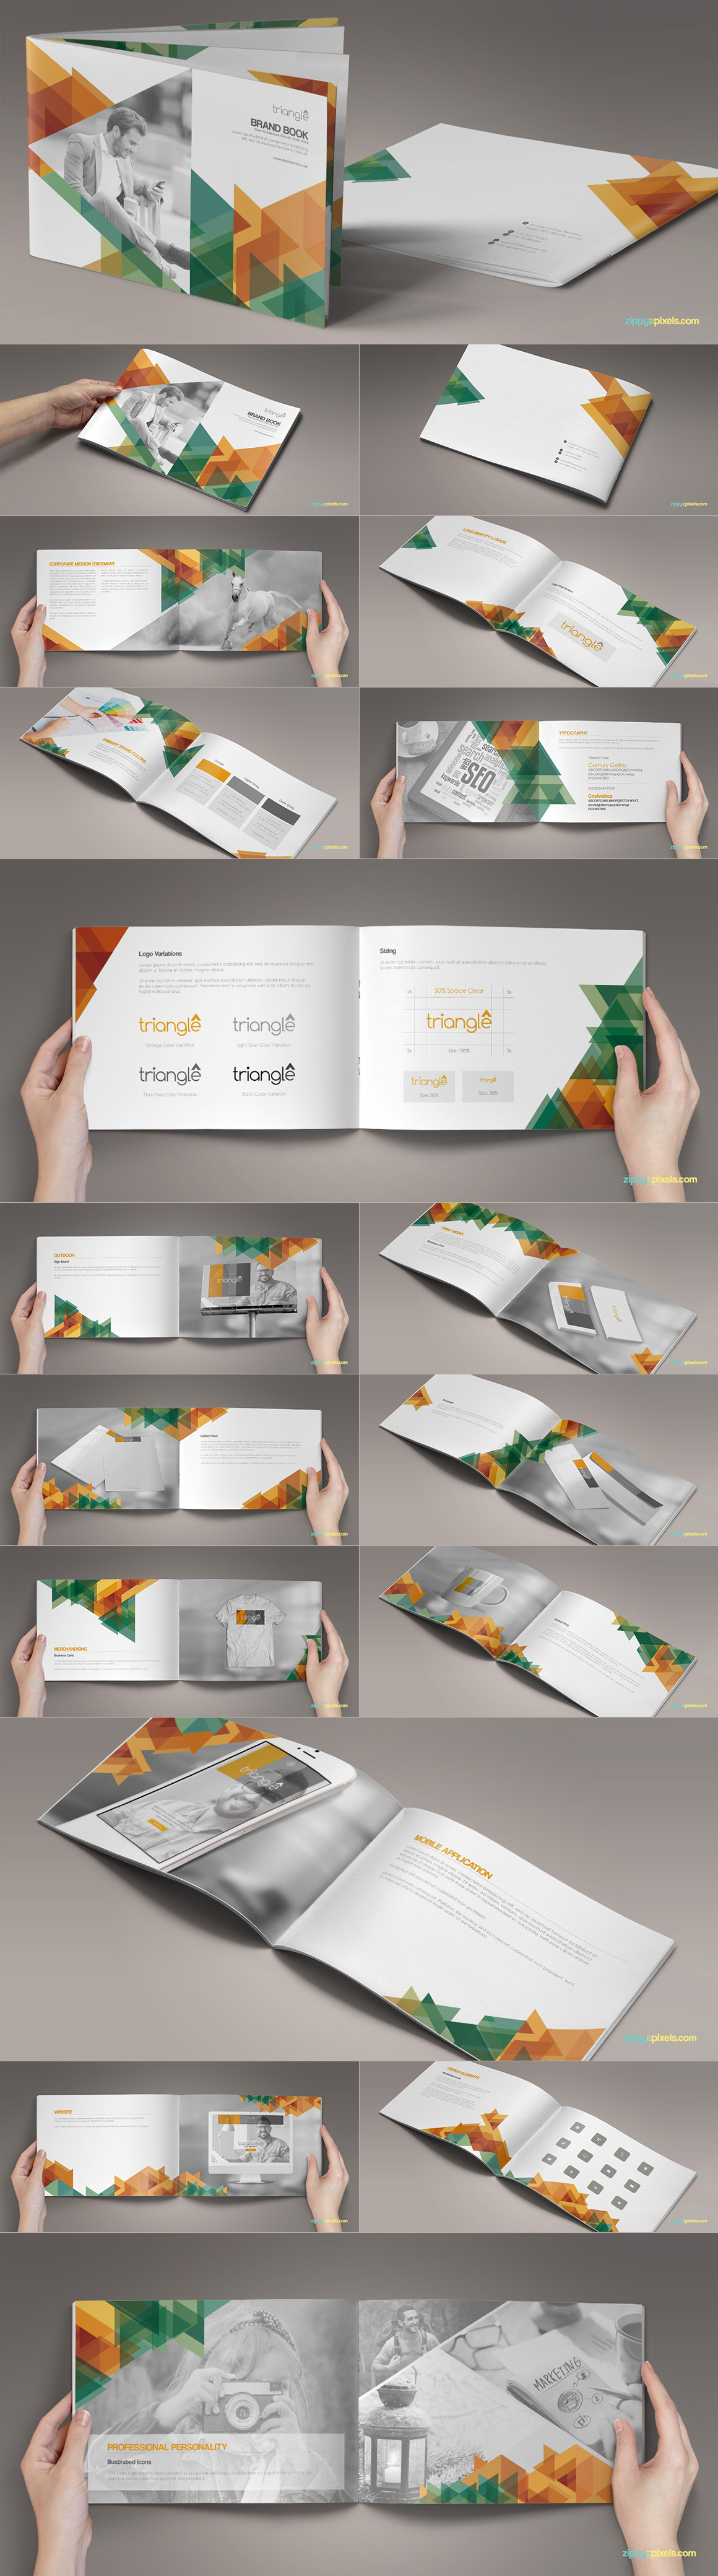 Style Guide & Brand Book Templates-strip9